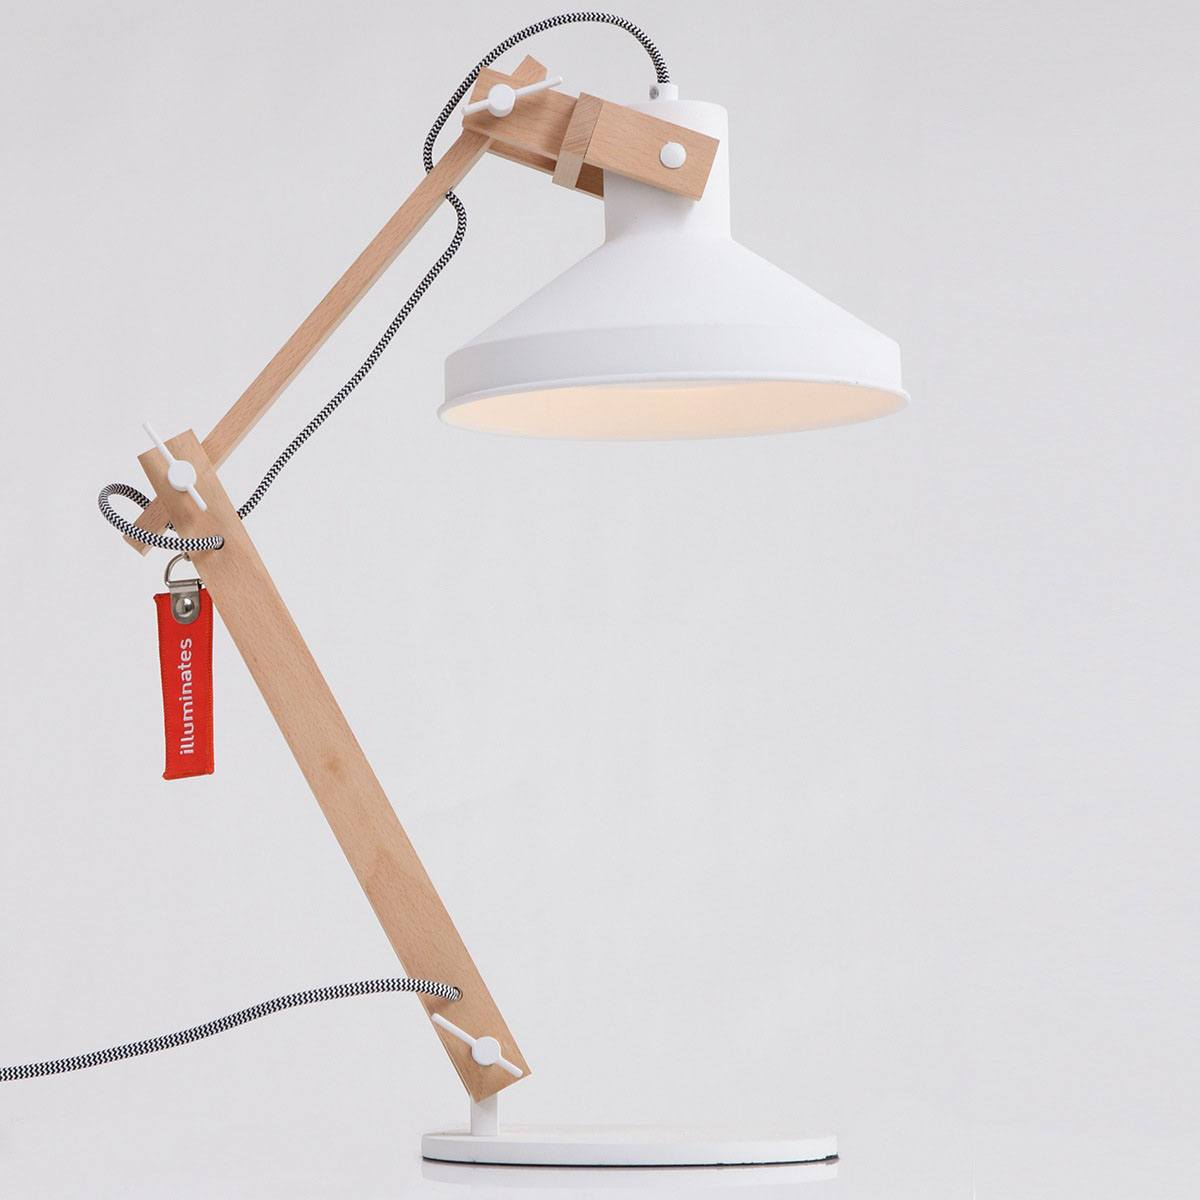 Tafellamp 1-lichts Hout E27 ANNE LIGHTING - 7866BE - Tafellamp- Bureaulamp- Anne Lighting- Woody- Scandinavisch - Trendy- Wit Bruin Houten lamp met witte accenten- Metaal Hout